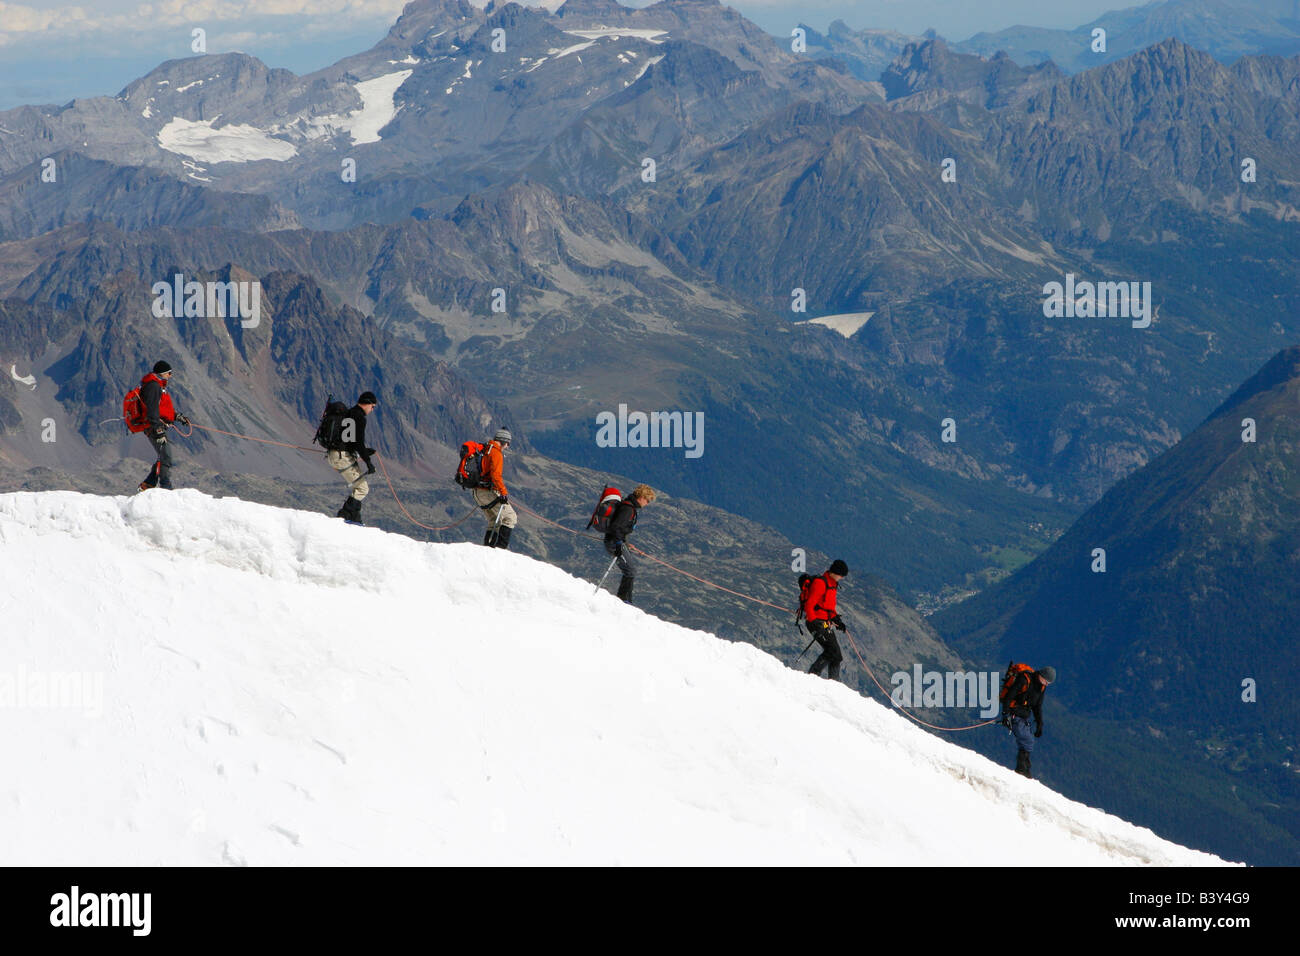 Mountaineers descend into the Vallee Blanche from the summit of the Aiguille du Midi cable car, Chamonix, French - Stock Image